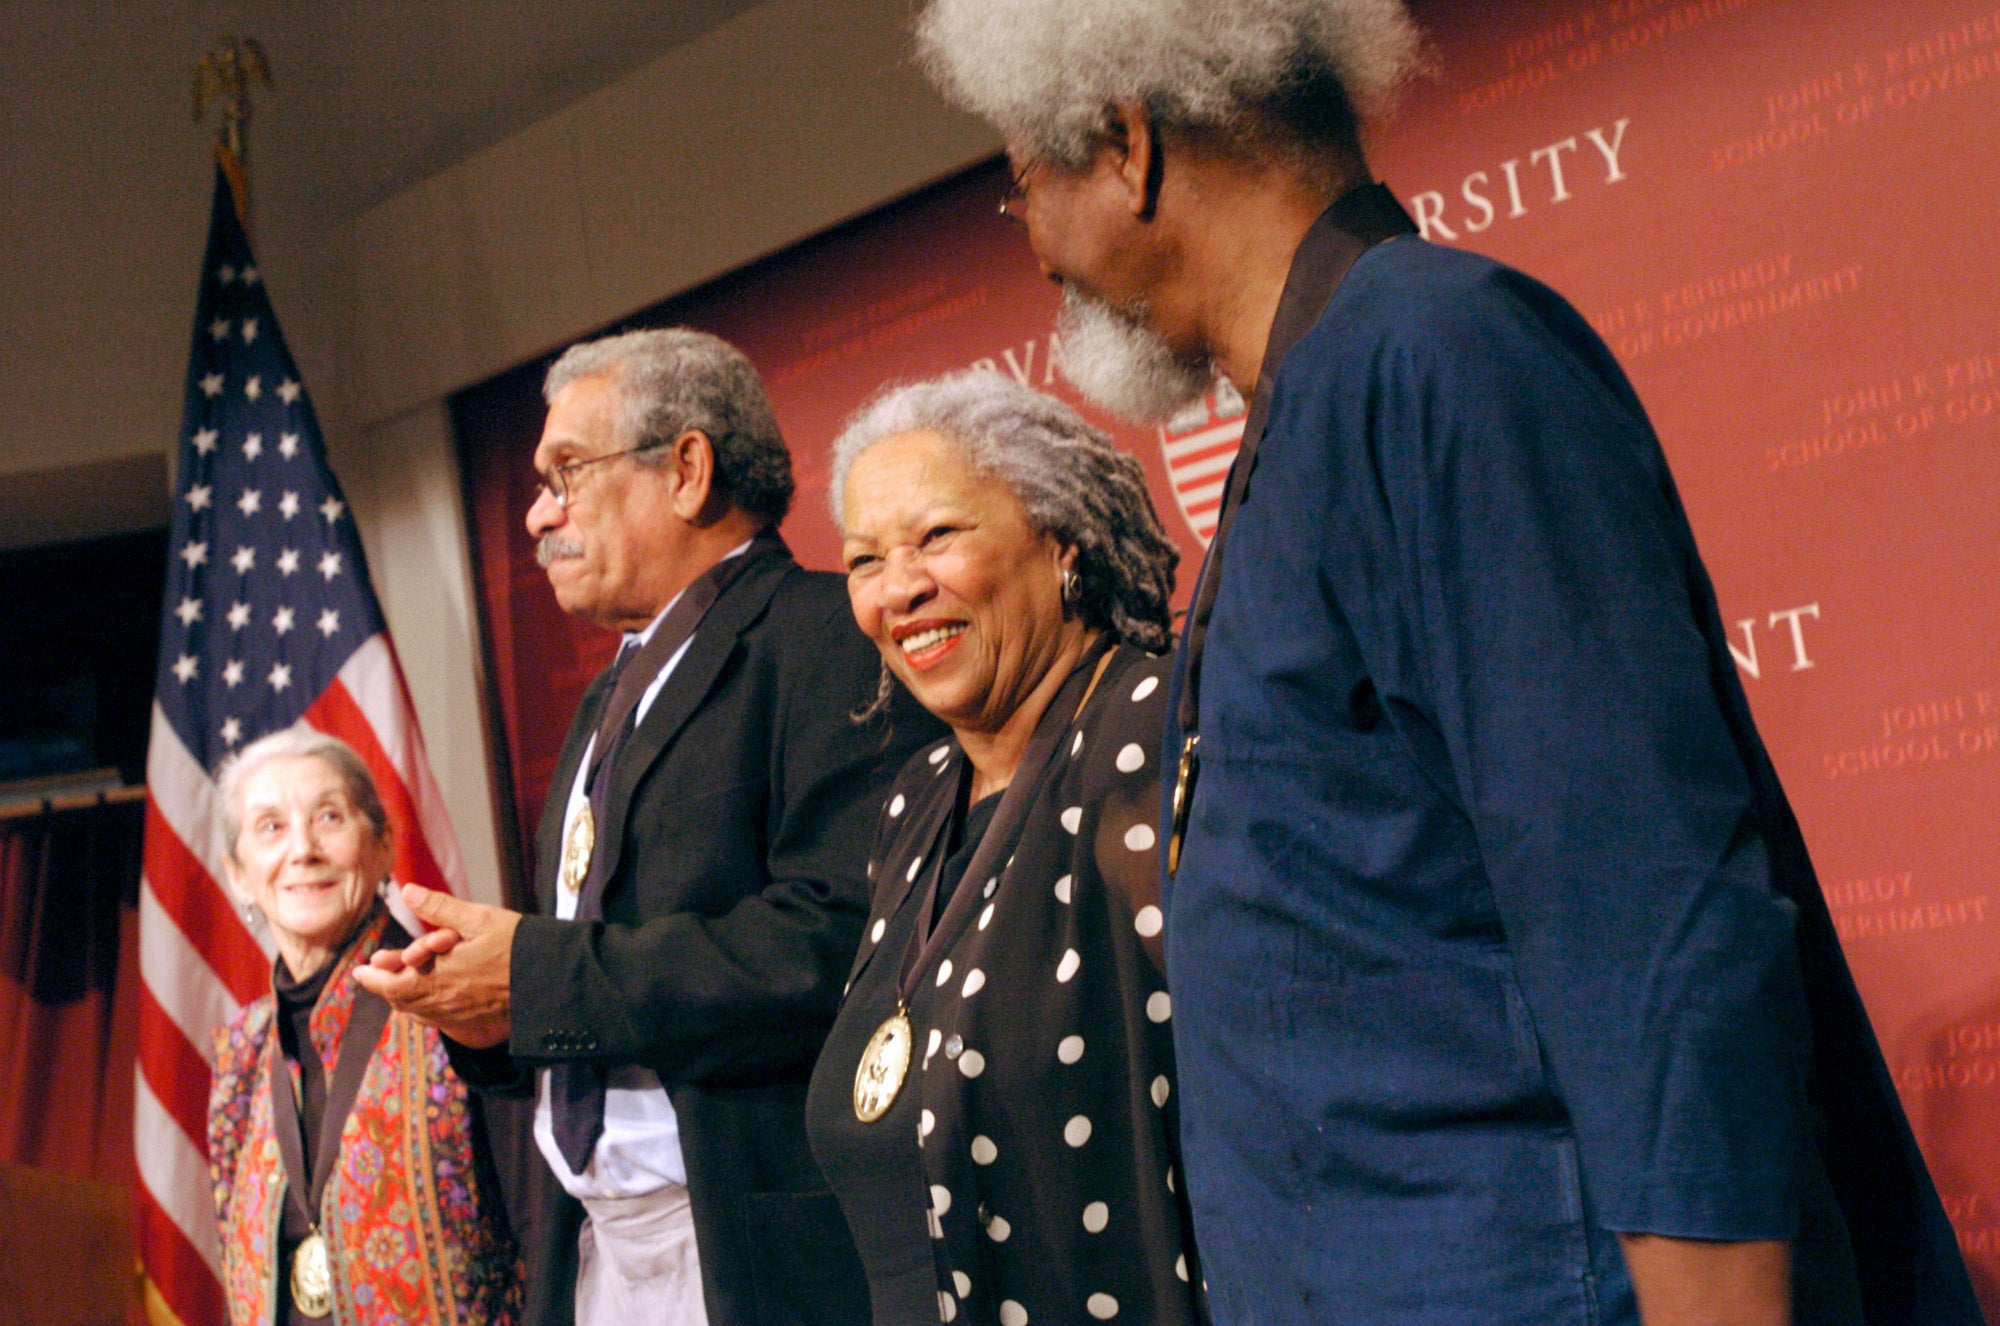 Nobel Prize winners in literature (from left) Nadine Gordimer, Derek Walcott, and Toni Morrison came together to celebrate the birthday of their peer, Wole Soyinka (right).